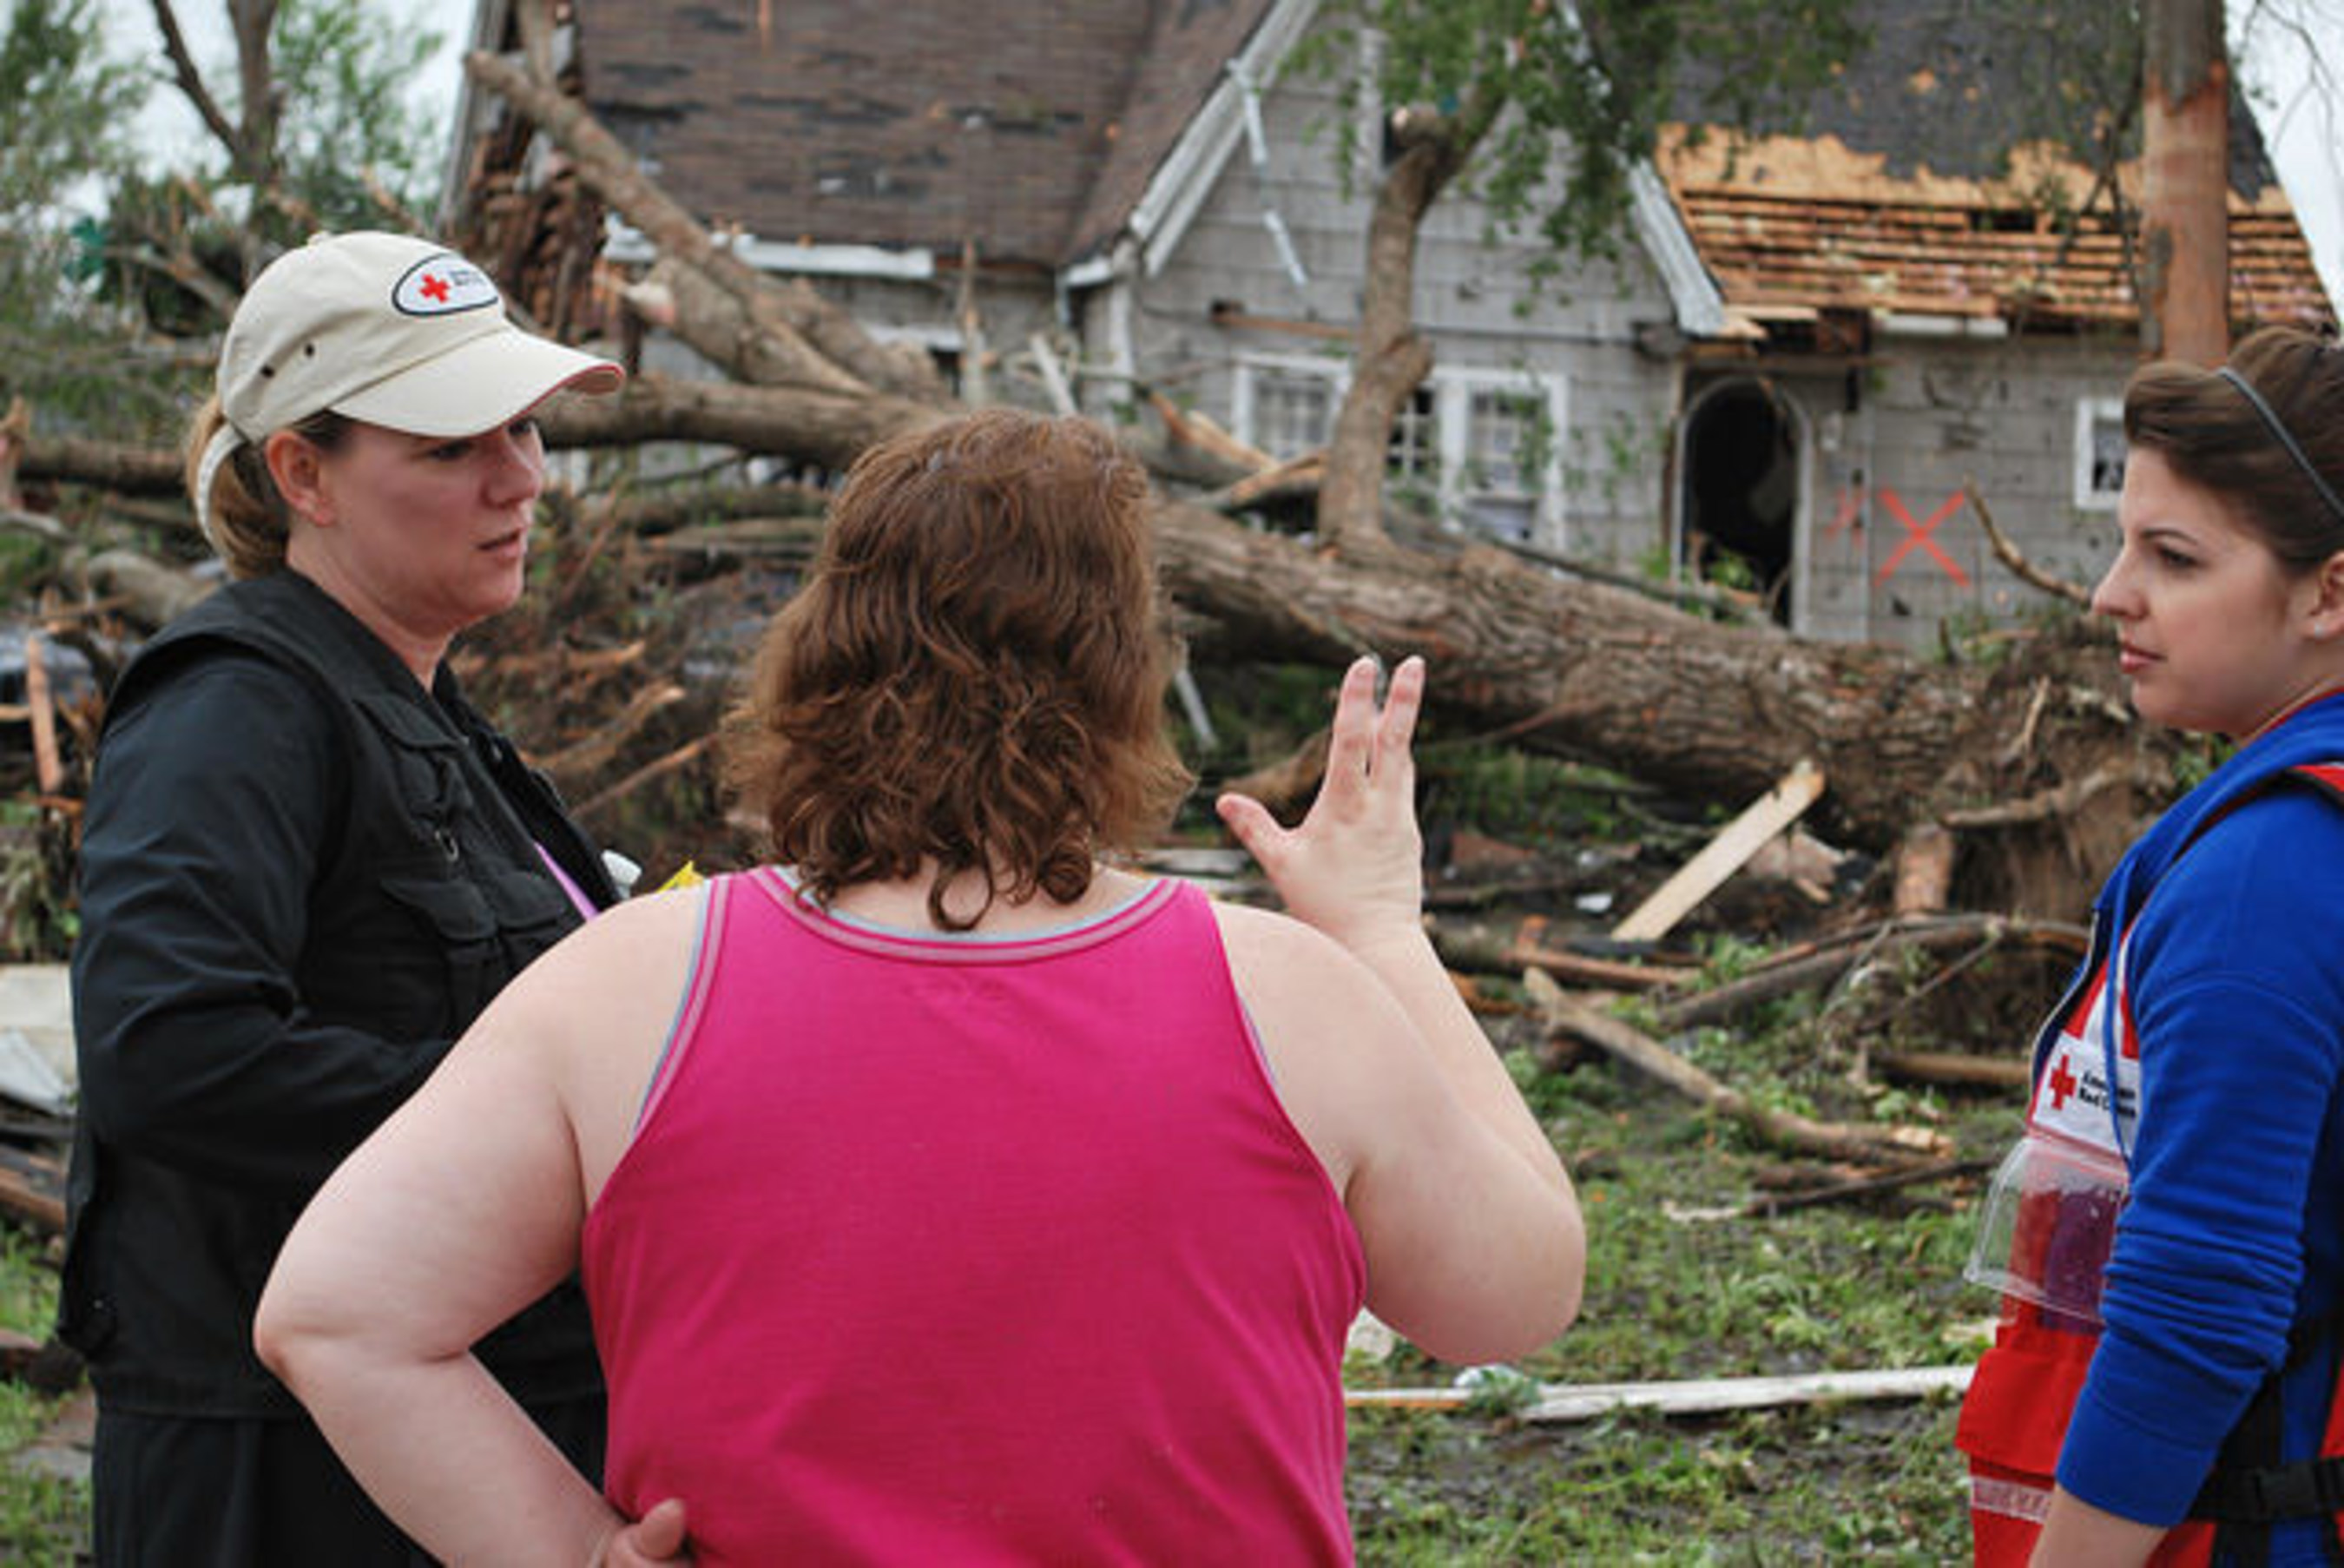 Red Cross workers comfort woman in Van, Texas after a tornado ripped through her home.